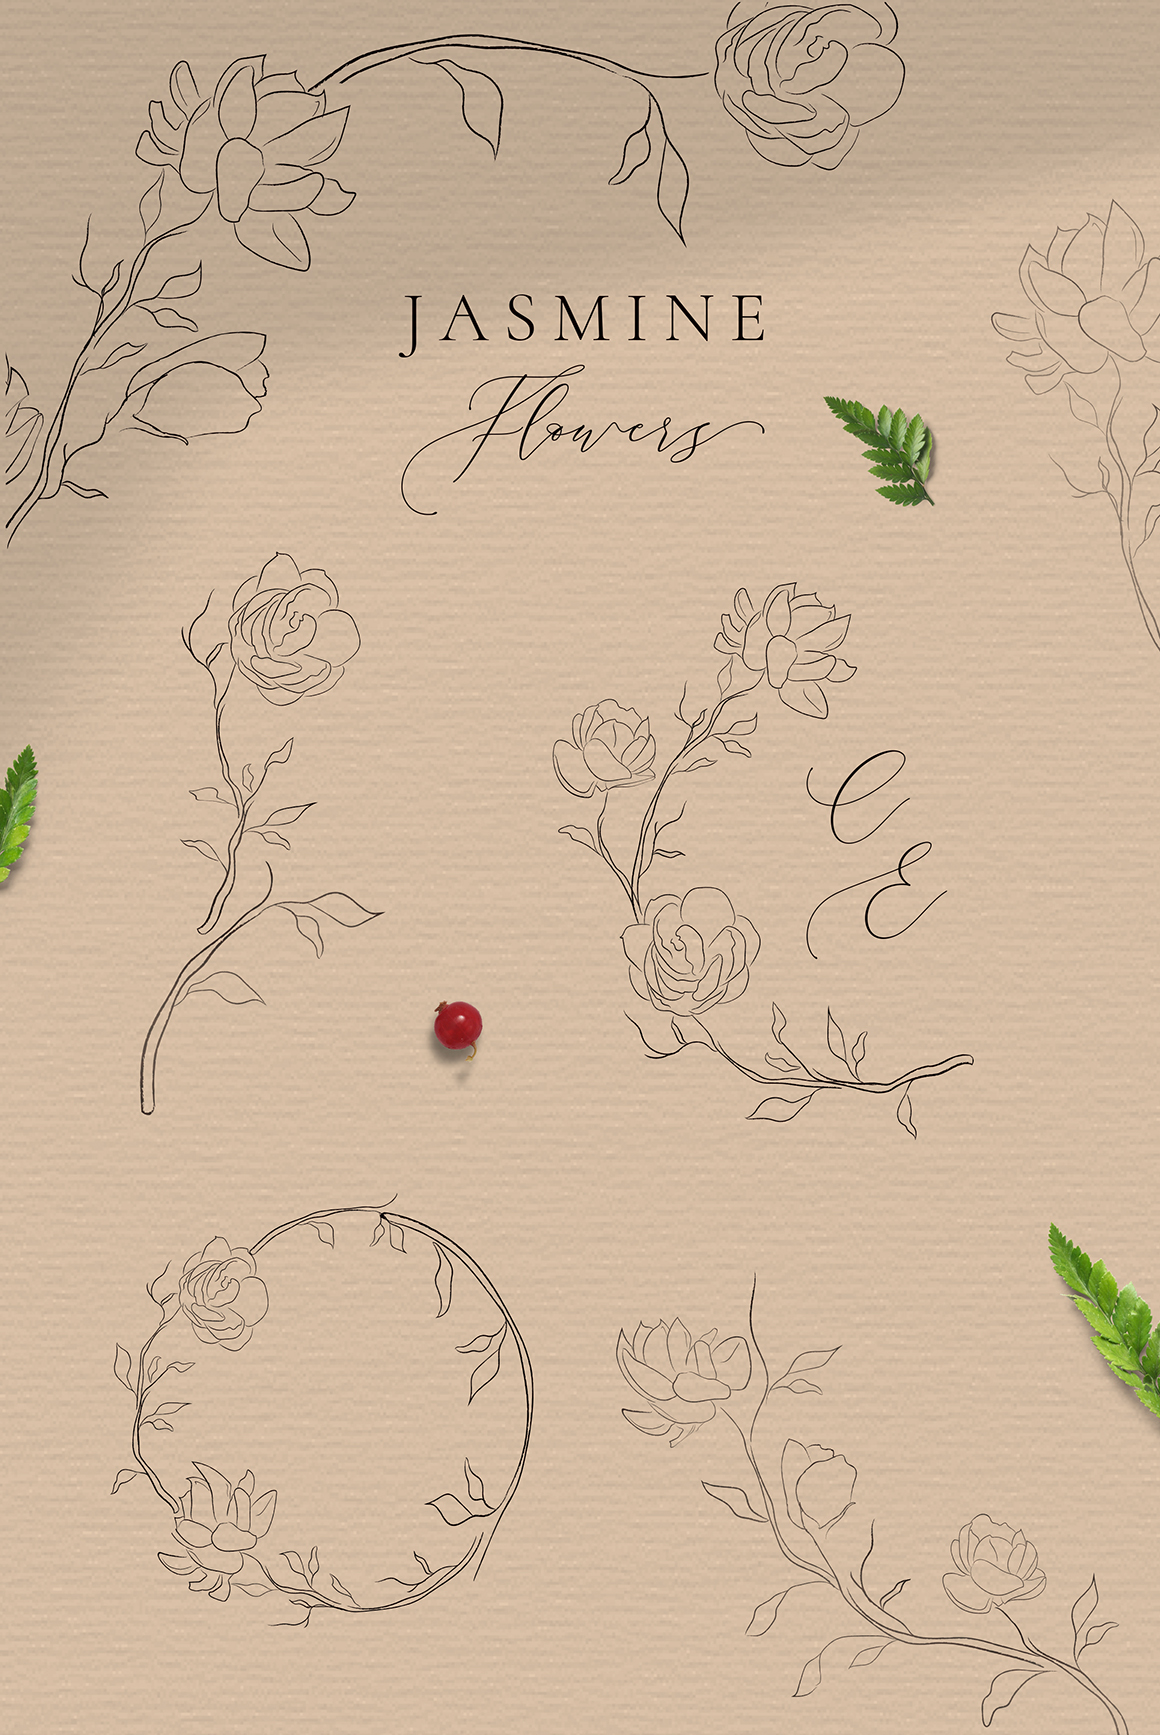 Jasmine Flowers Line Art Decorative Elements